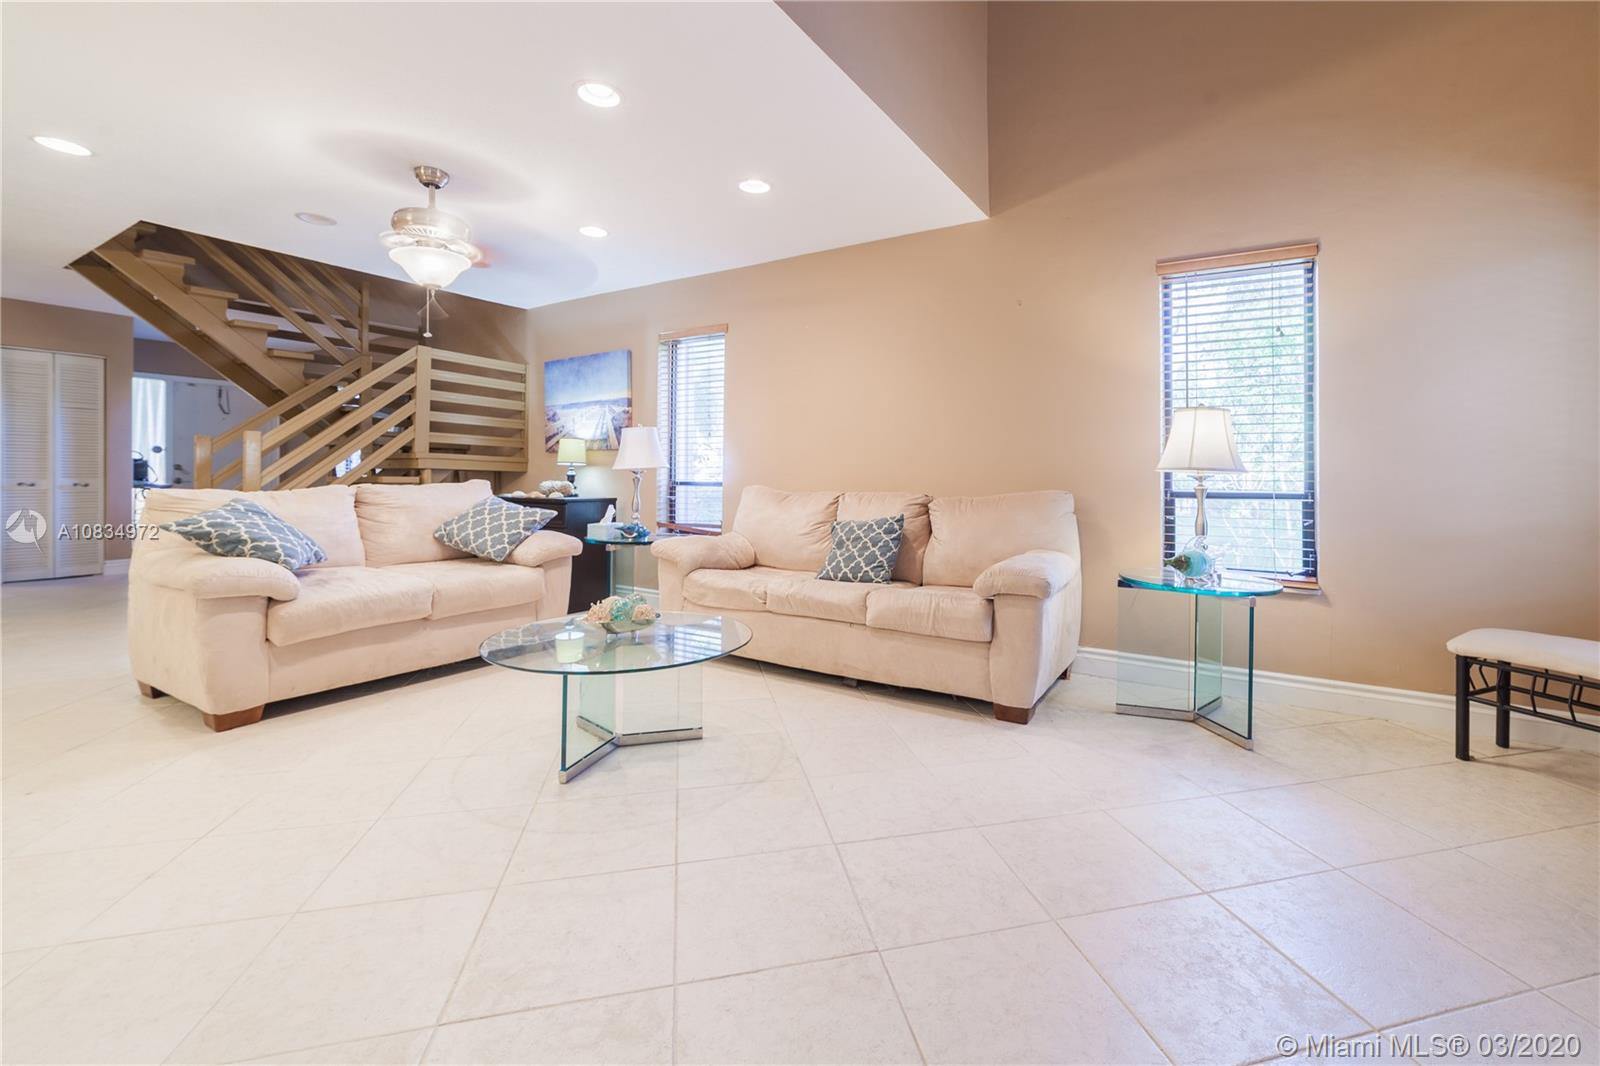 2826 N 34th Ave #8 For Sale A10834972, FL